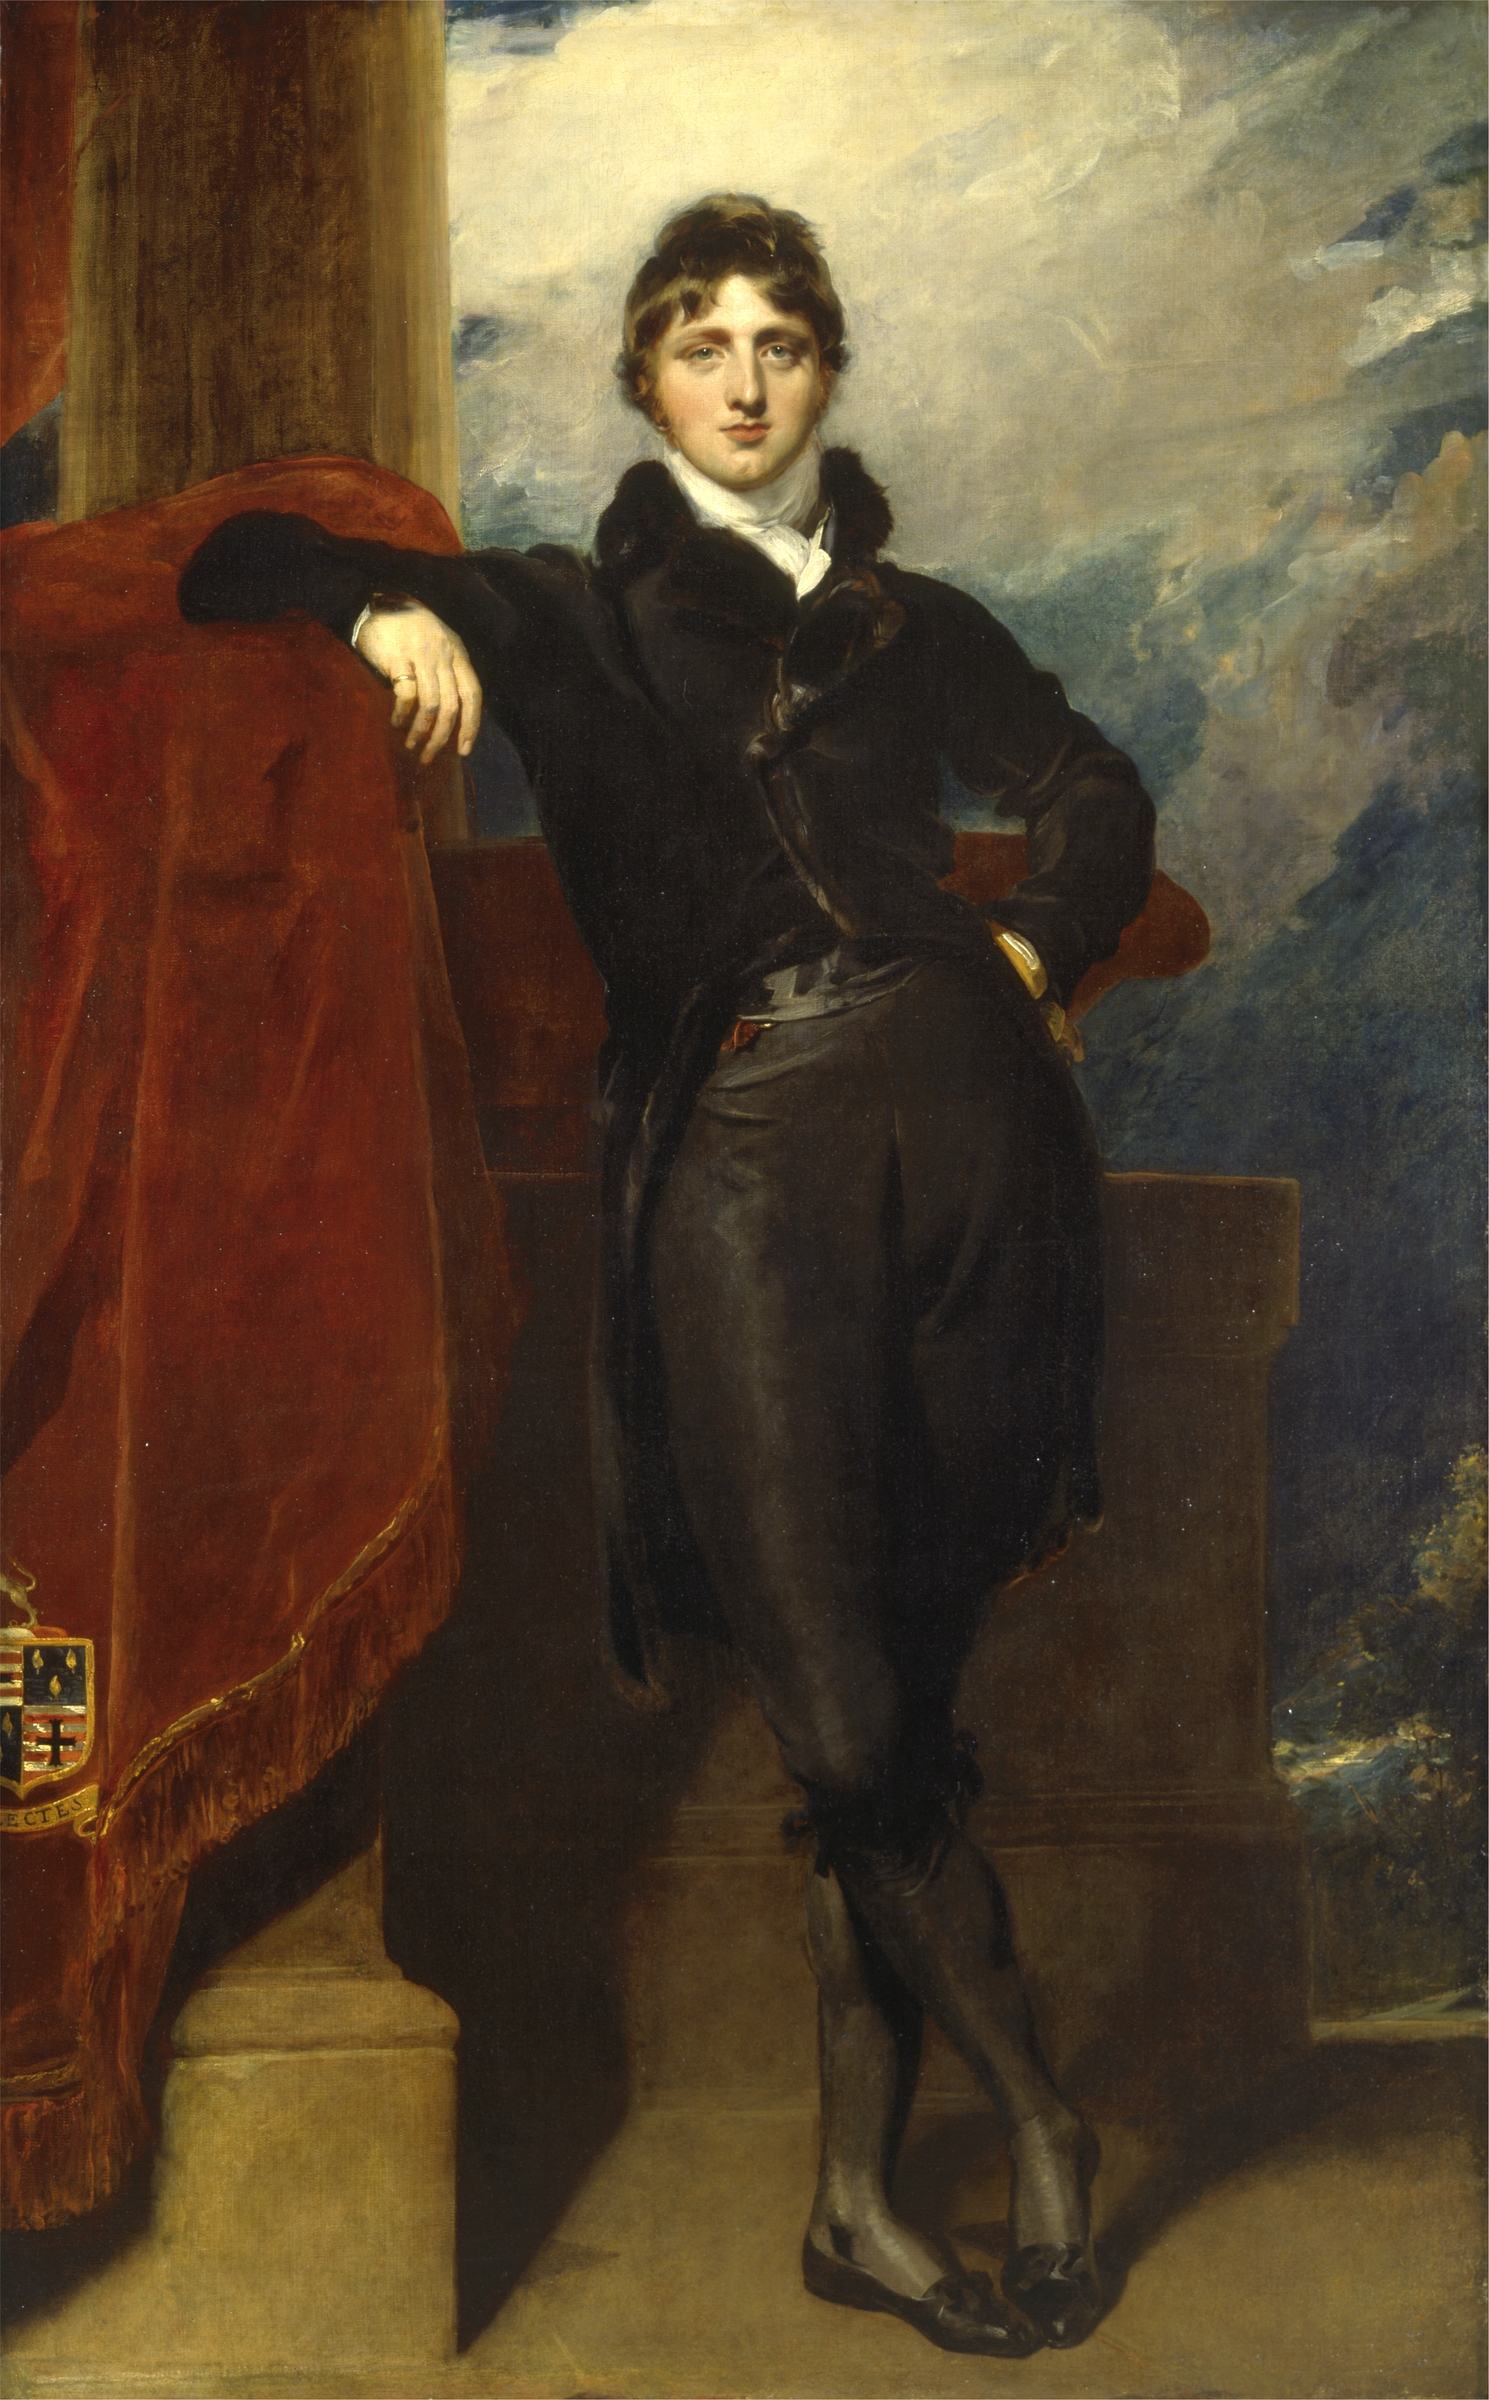 http://upload.wikimedia.org/wikipedia/commons/8/86/Thomas_Lawrence%2C_Portrait_of_Lord_Granville_Leveson-Gower%2C_later_1st_Earl_Granville_%28c._1804%E2%80%931809%29.jpg